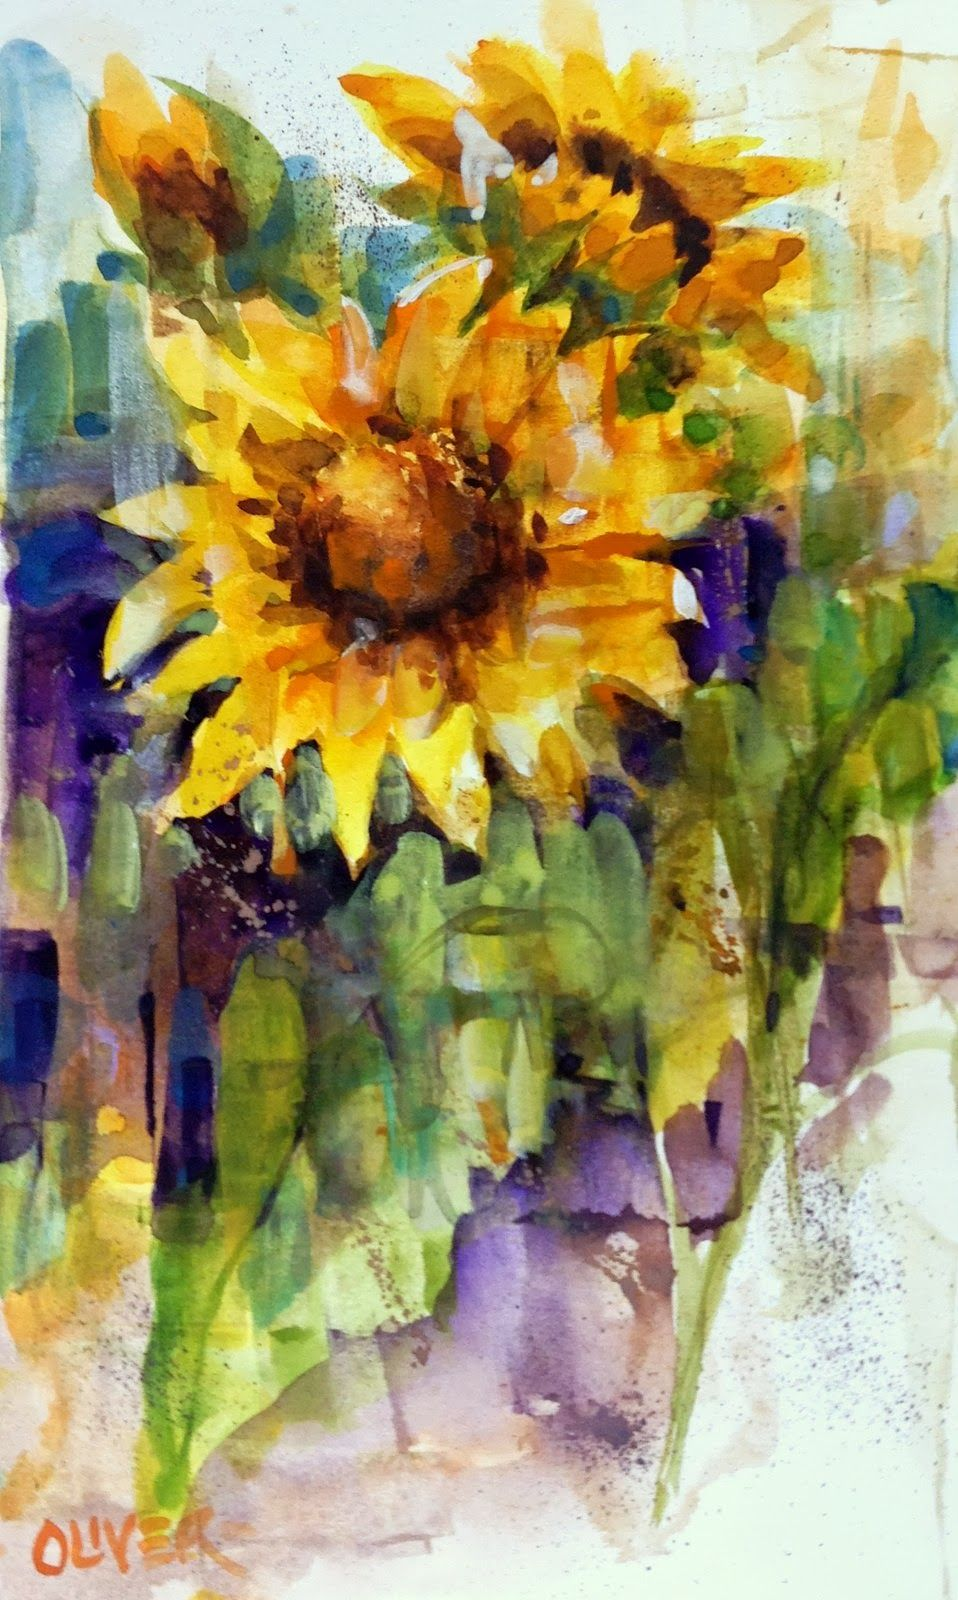 Fine watercolor art for sale - Art Talk Julie Ford Oliver Watercolor Weekends Sunflowers